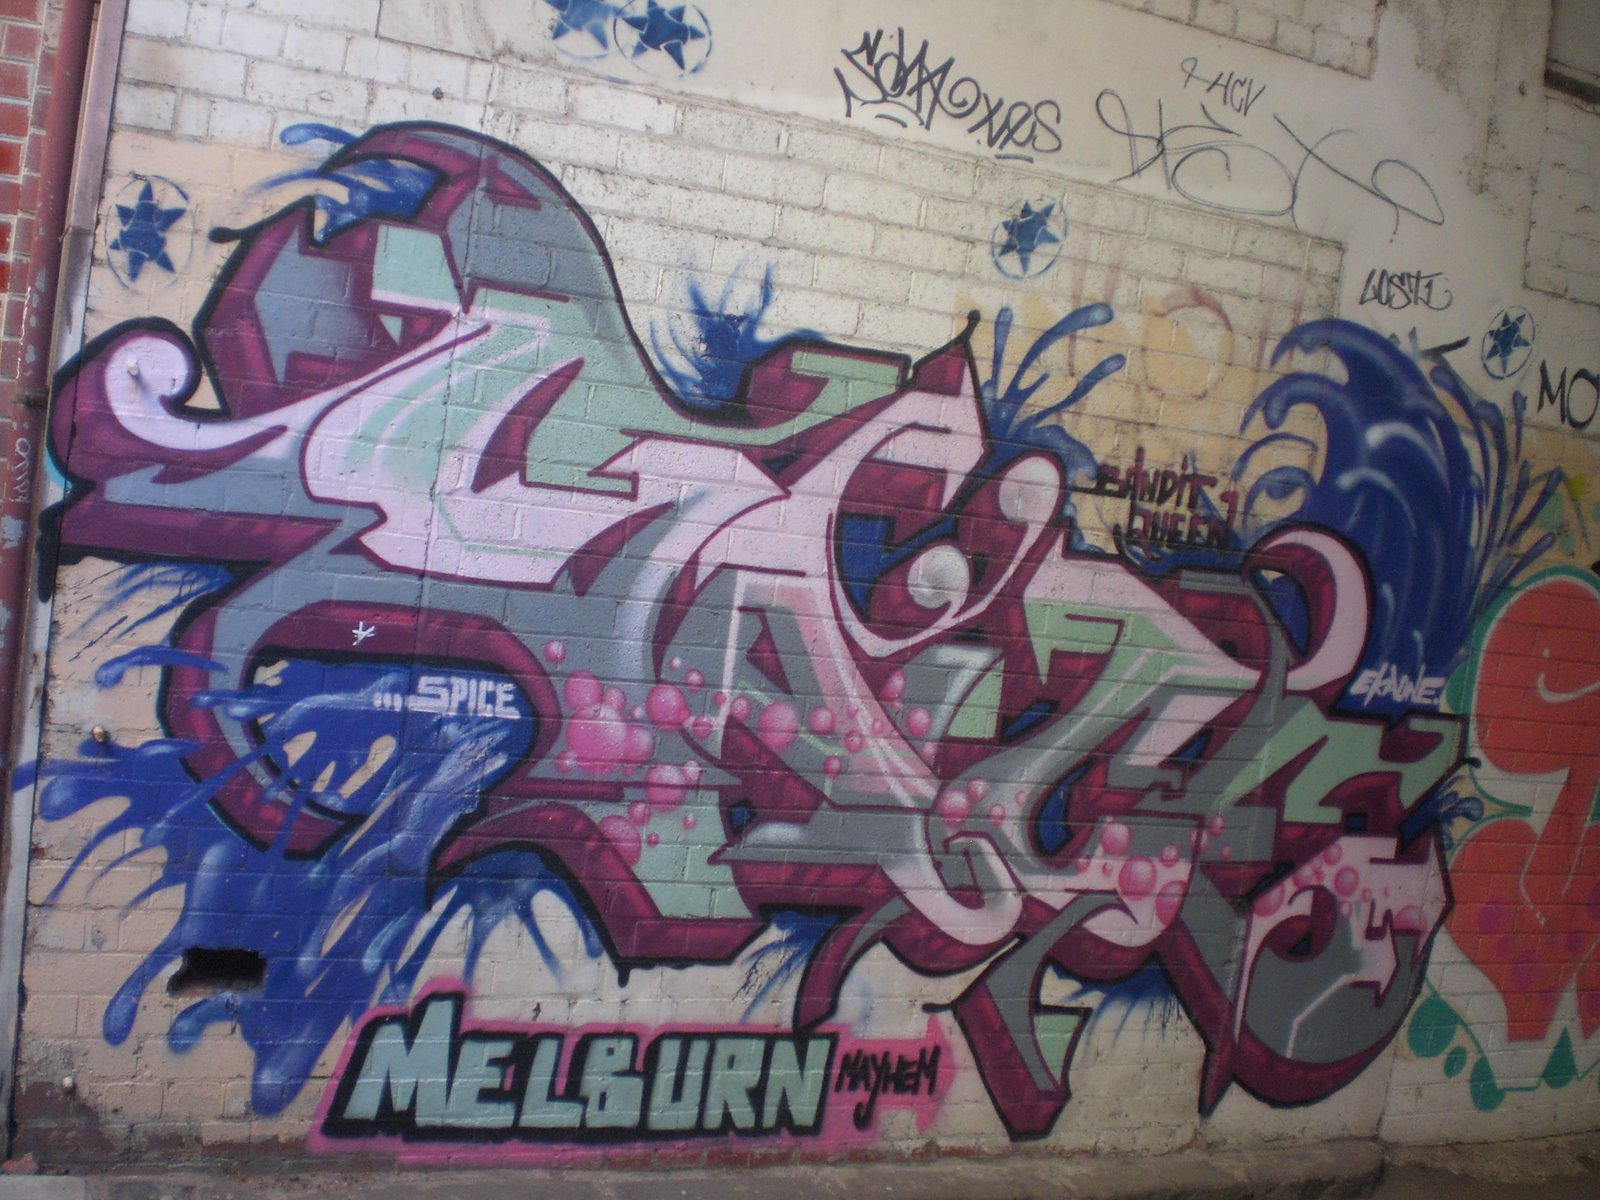 graffiti in melbournes laneways Top 6 street art laneways in melbourne  together, they created the beautiful street art mural as a part of the city's graffiti mentoring project union lane.